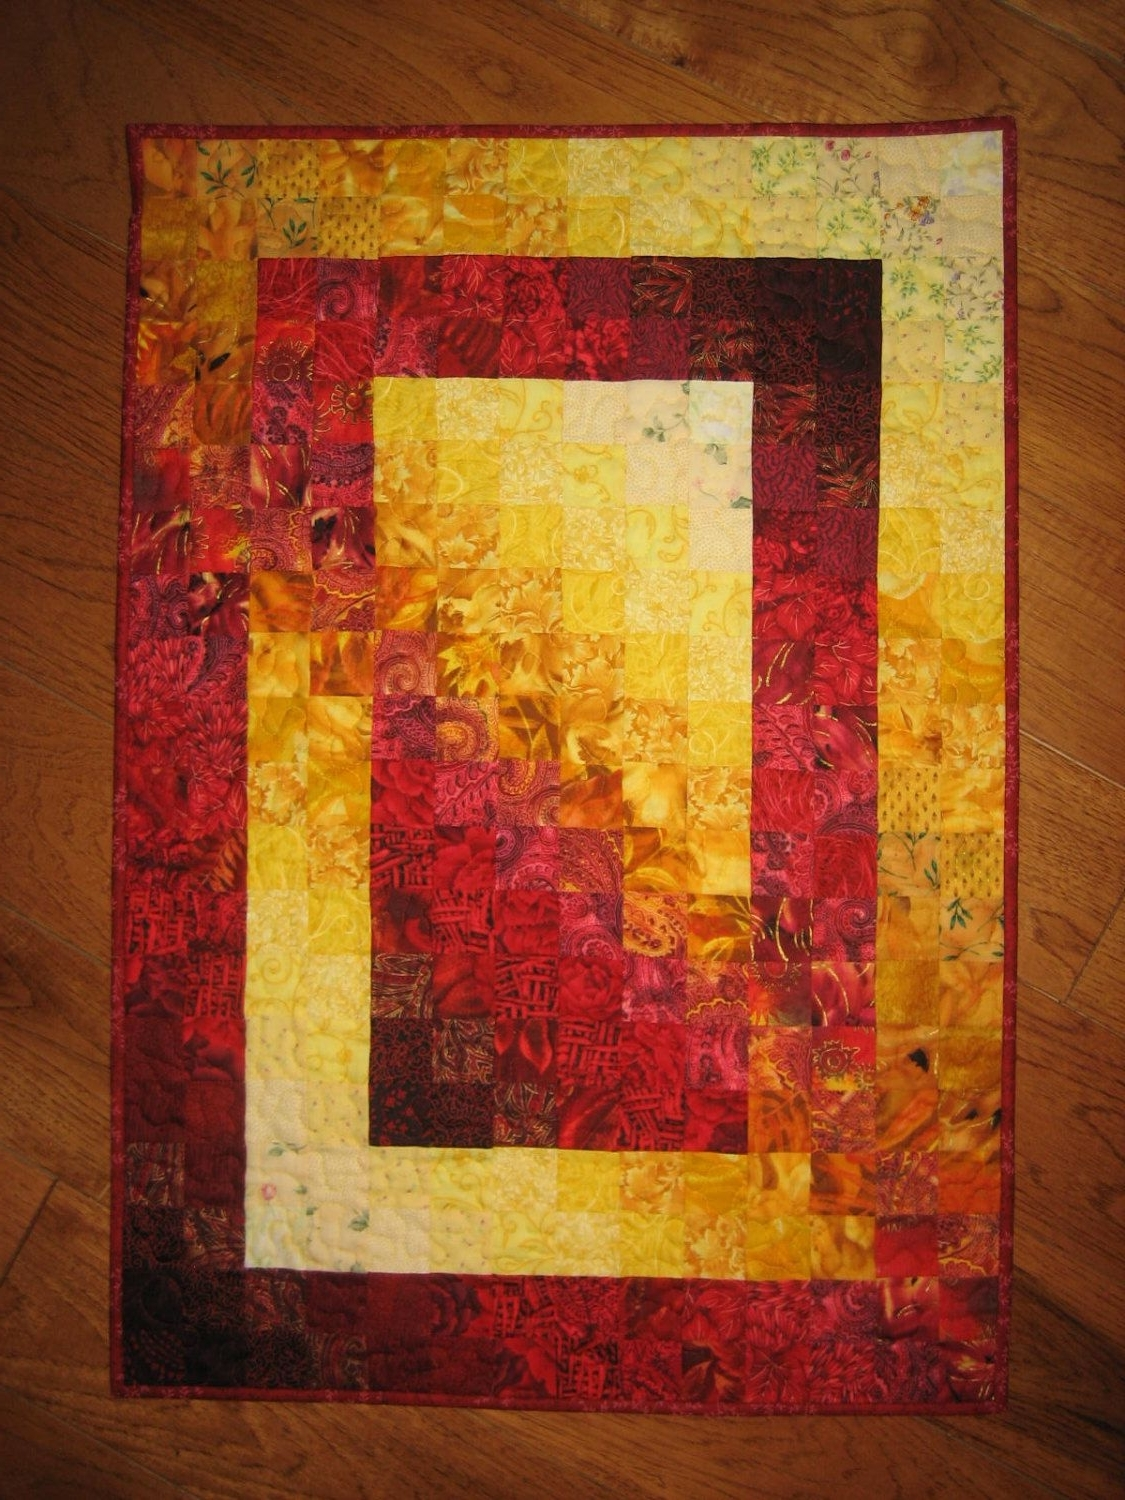 Preferred Fabric Wall Hangings Art In Art Quilt, Fire Red Yellow Orange Fabric Wall Hanging Abstract (View 13 of 15)